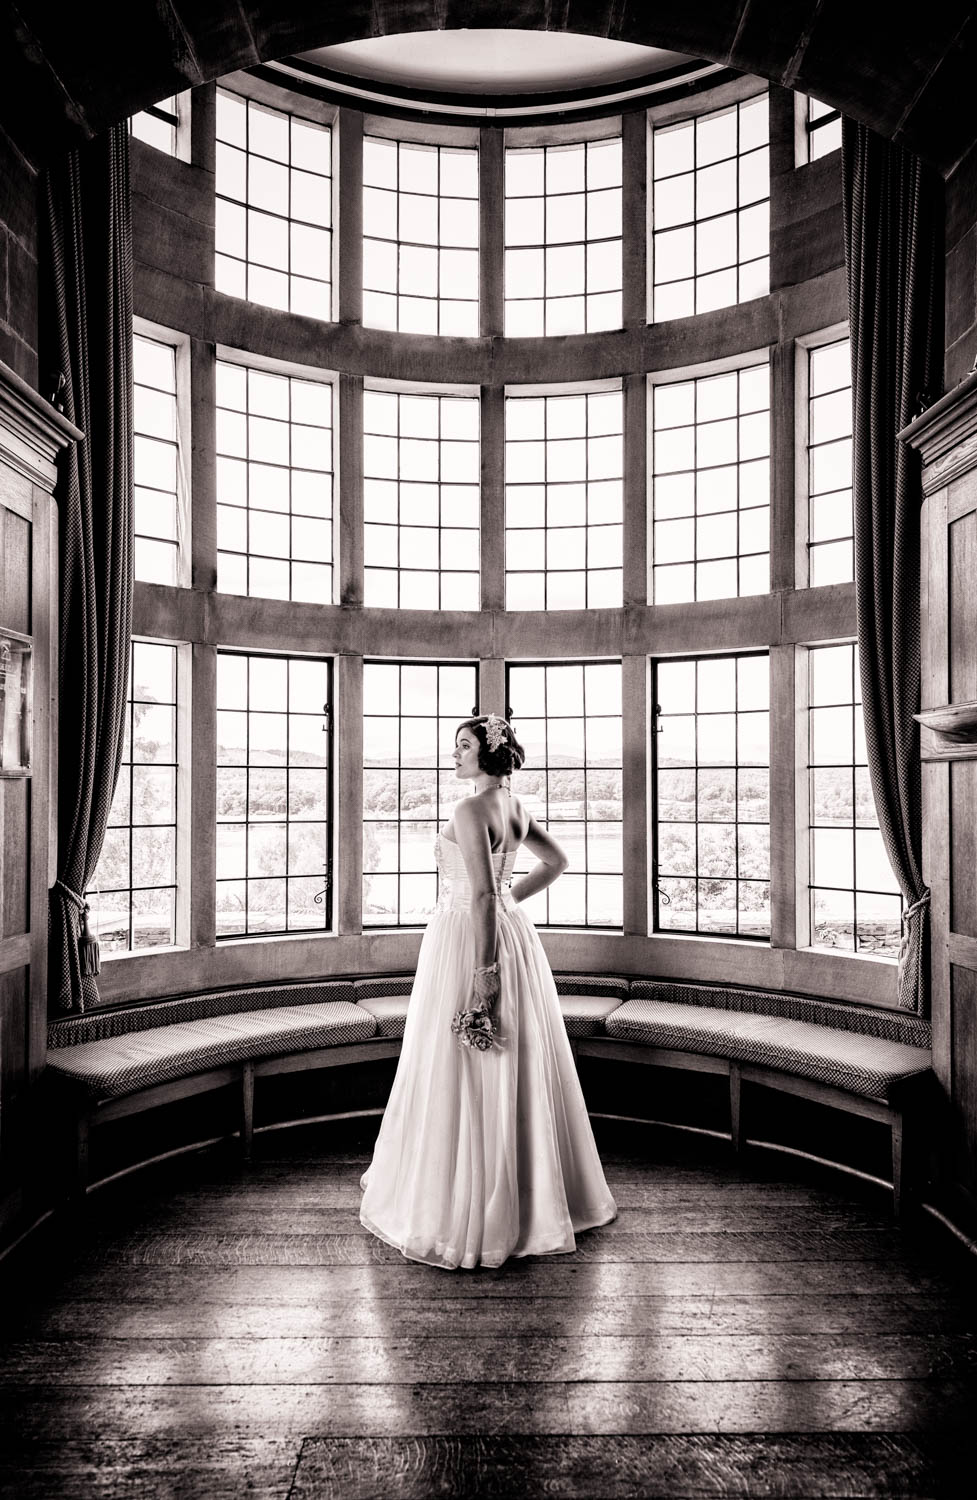 Classic wedding photo of the bride in front of a window by Chris Wright, Lancashire wedding photographer